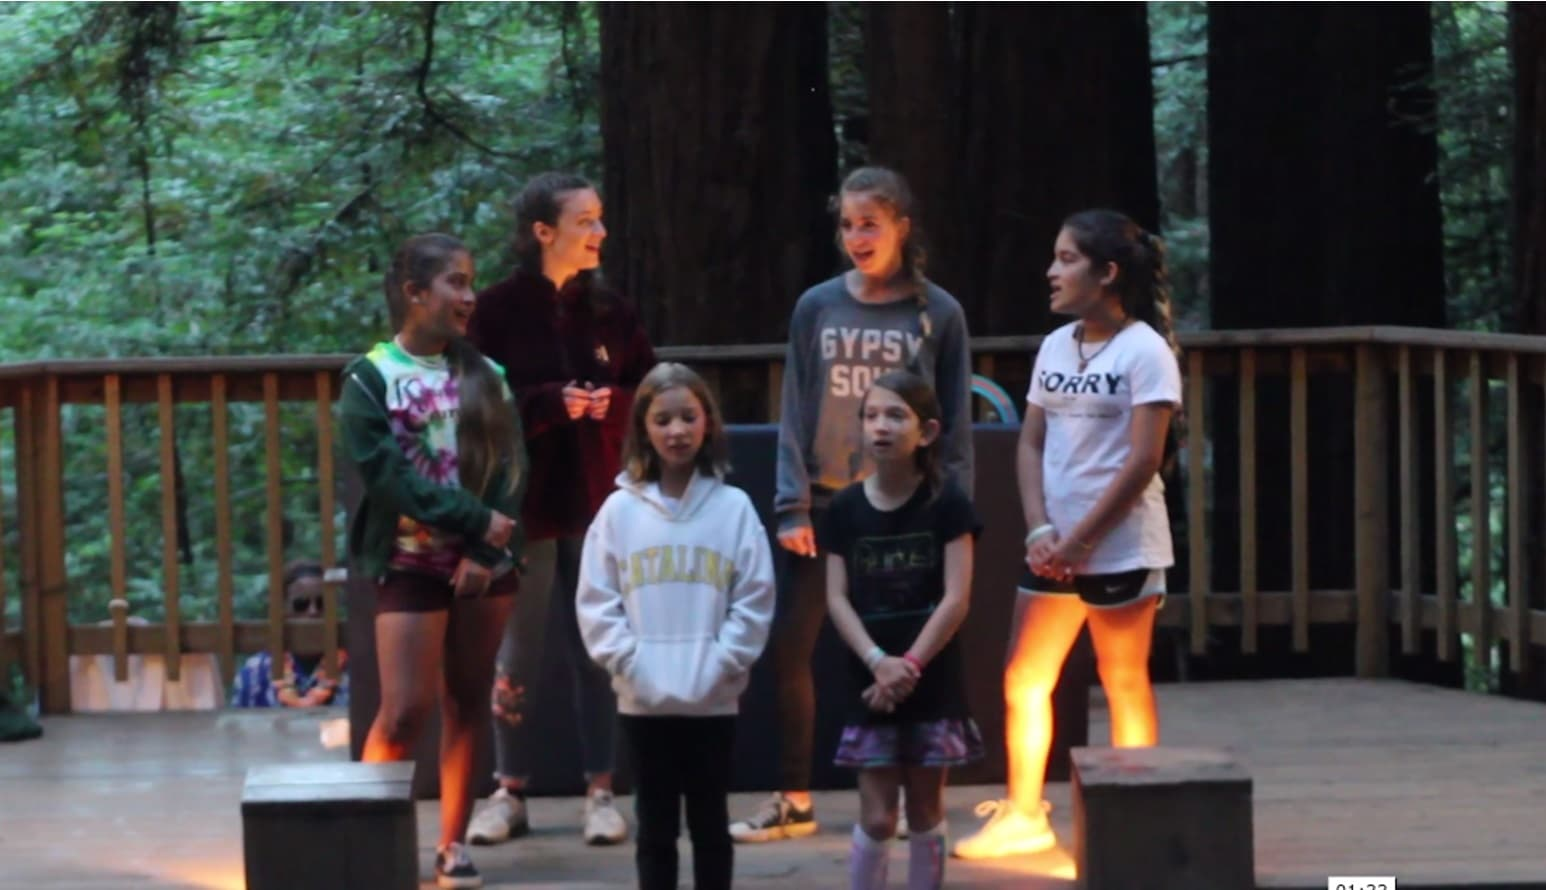 Singing camps in California help campers find their own moments of glee.